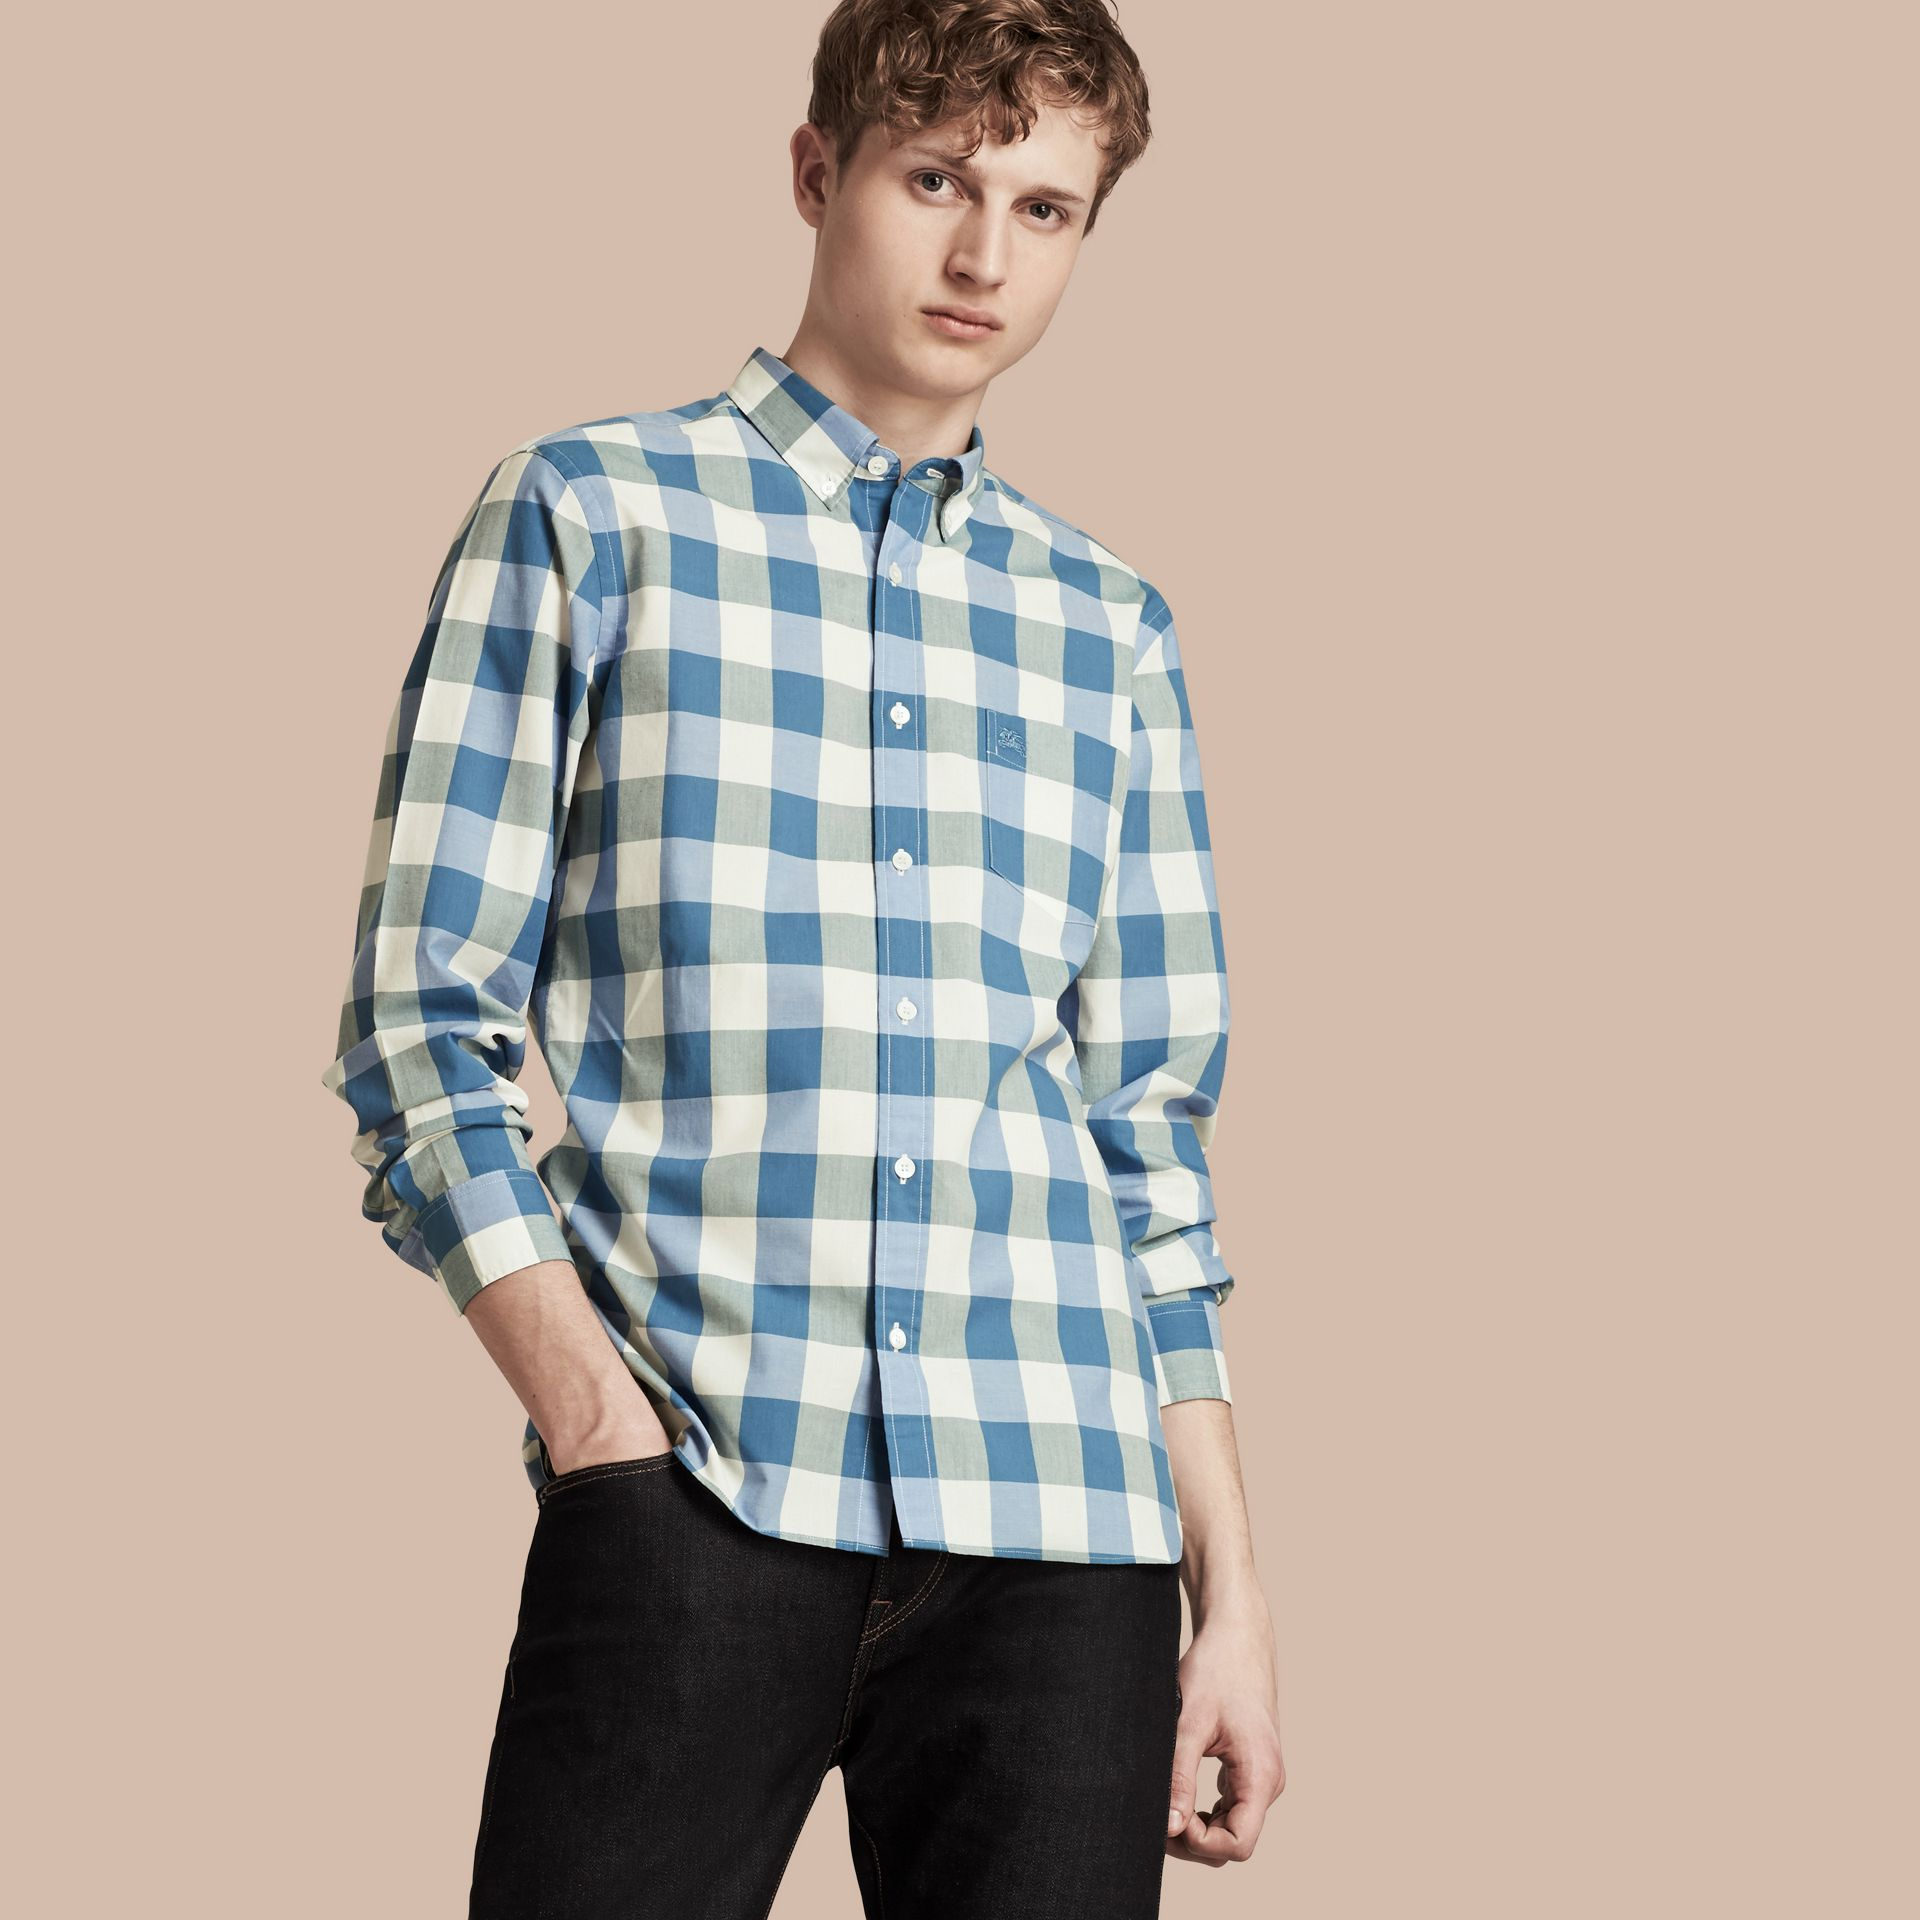 Blu ortensia intenso Camicia vichy in cotone con colletto button-down Blu Ortensia Intenso - immagine della galleria 1